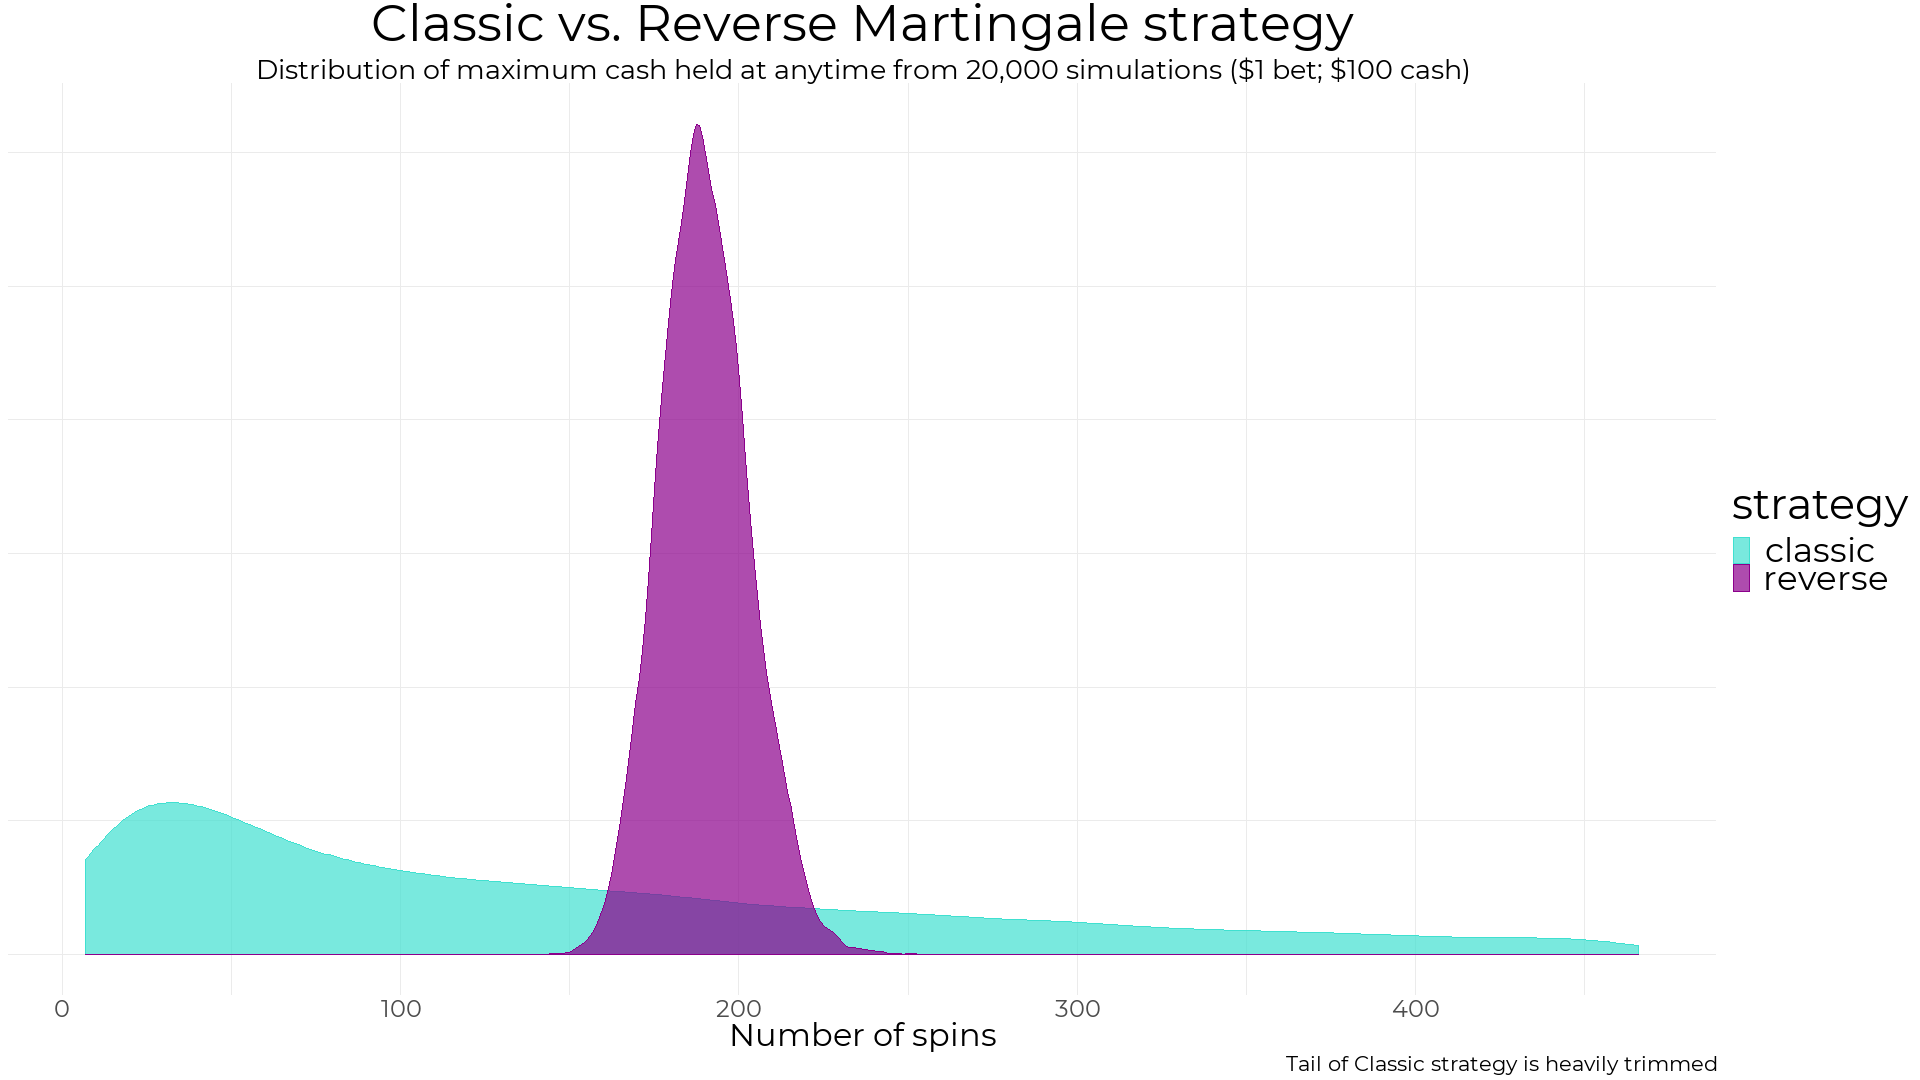 Martingale strategies don't work, but we knew that